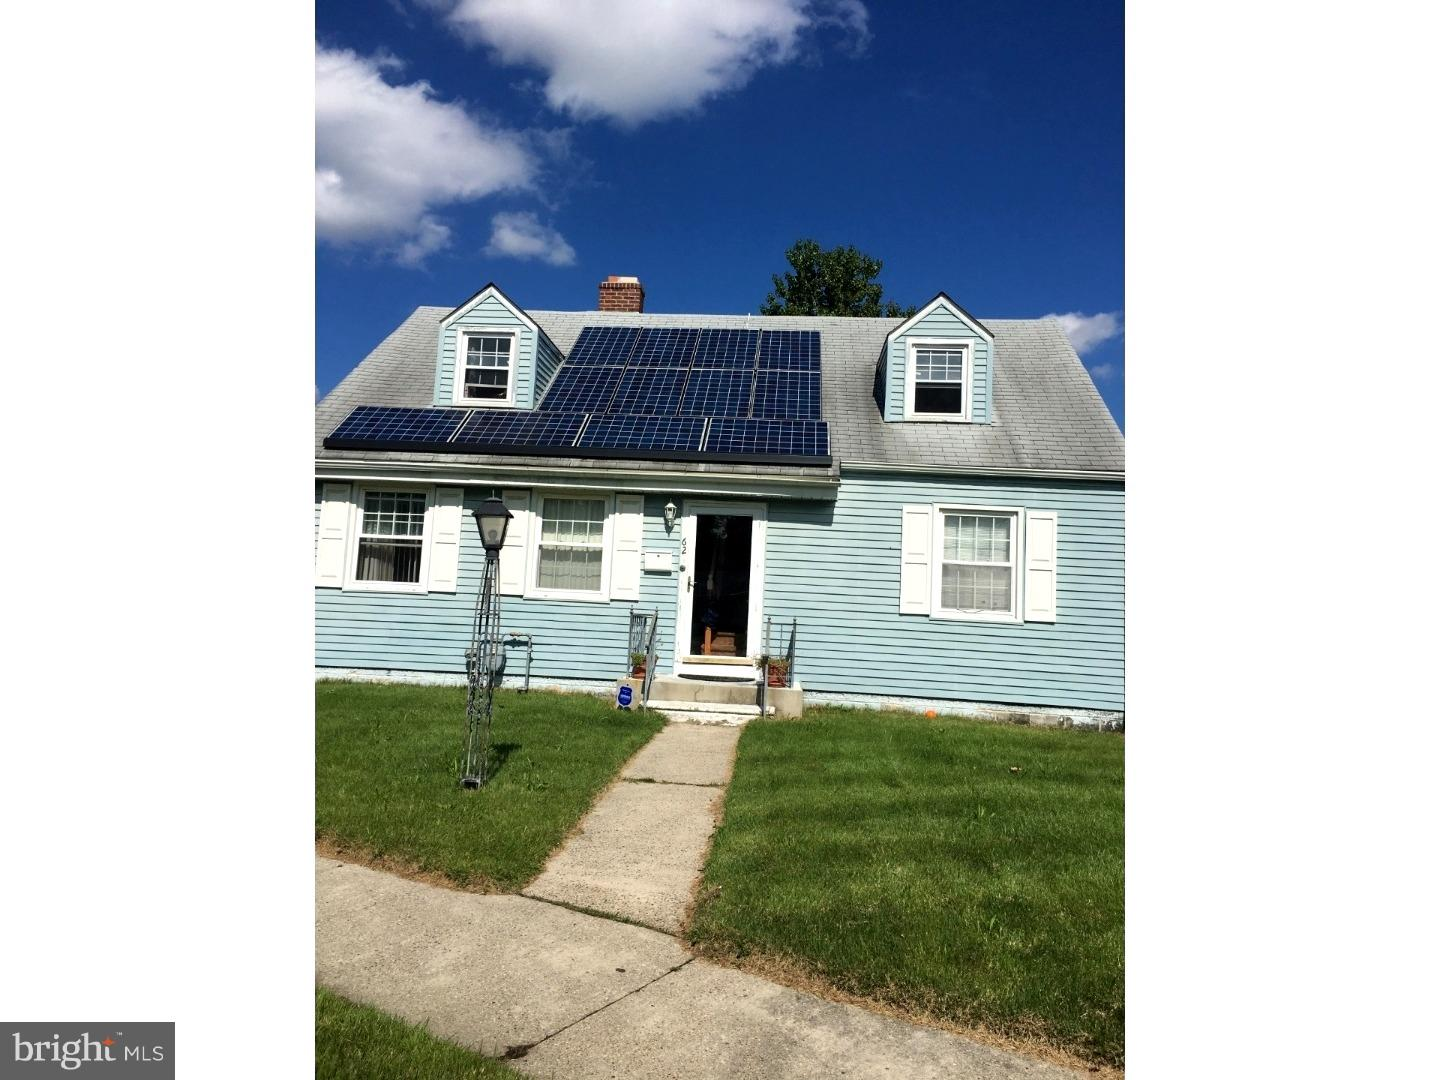 Single Family Home for Sale at 62 E WRIGHT Street Pleasantville, New Jersey 08232 United States